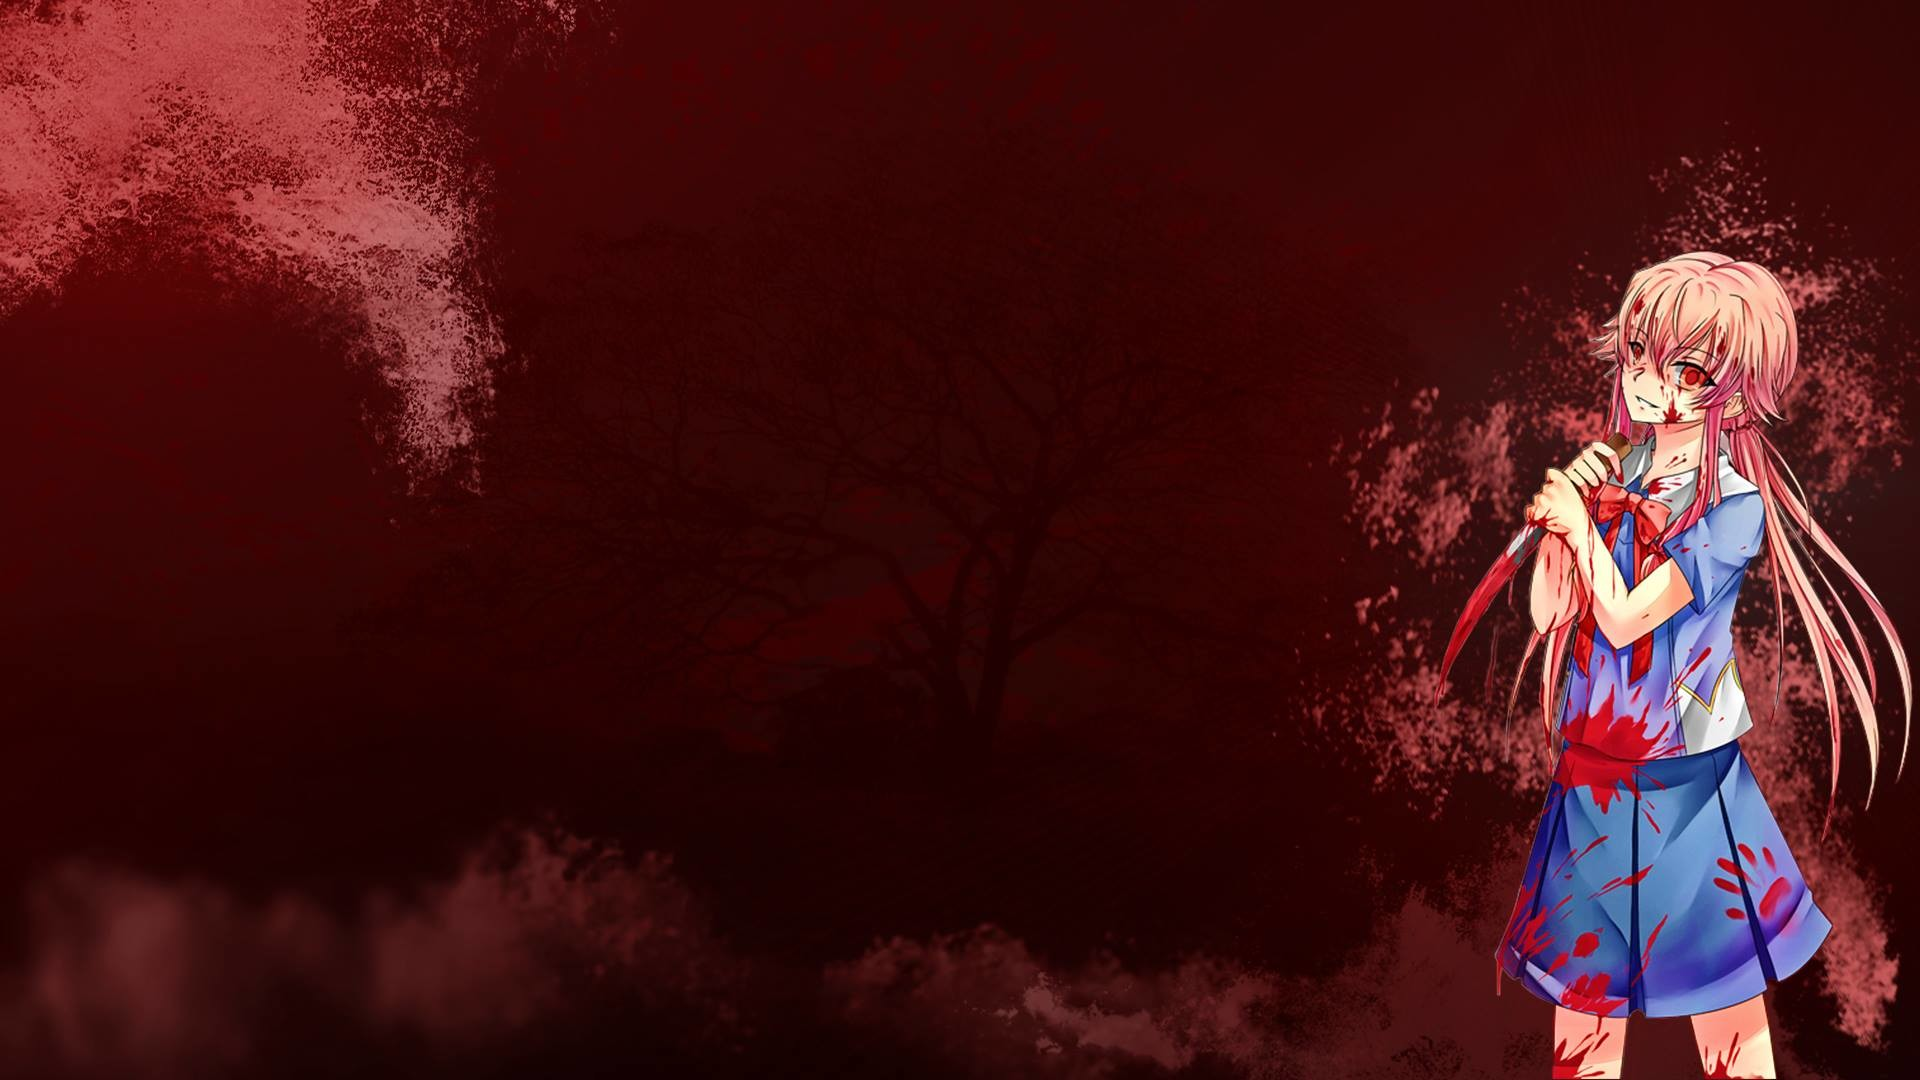 1920x1080 Yuno Gasai Wallpaper Yuno gasai future diary by